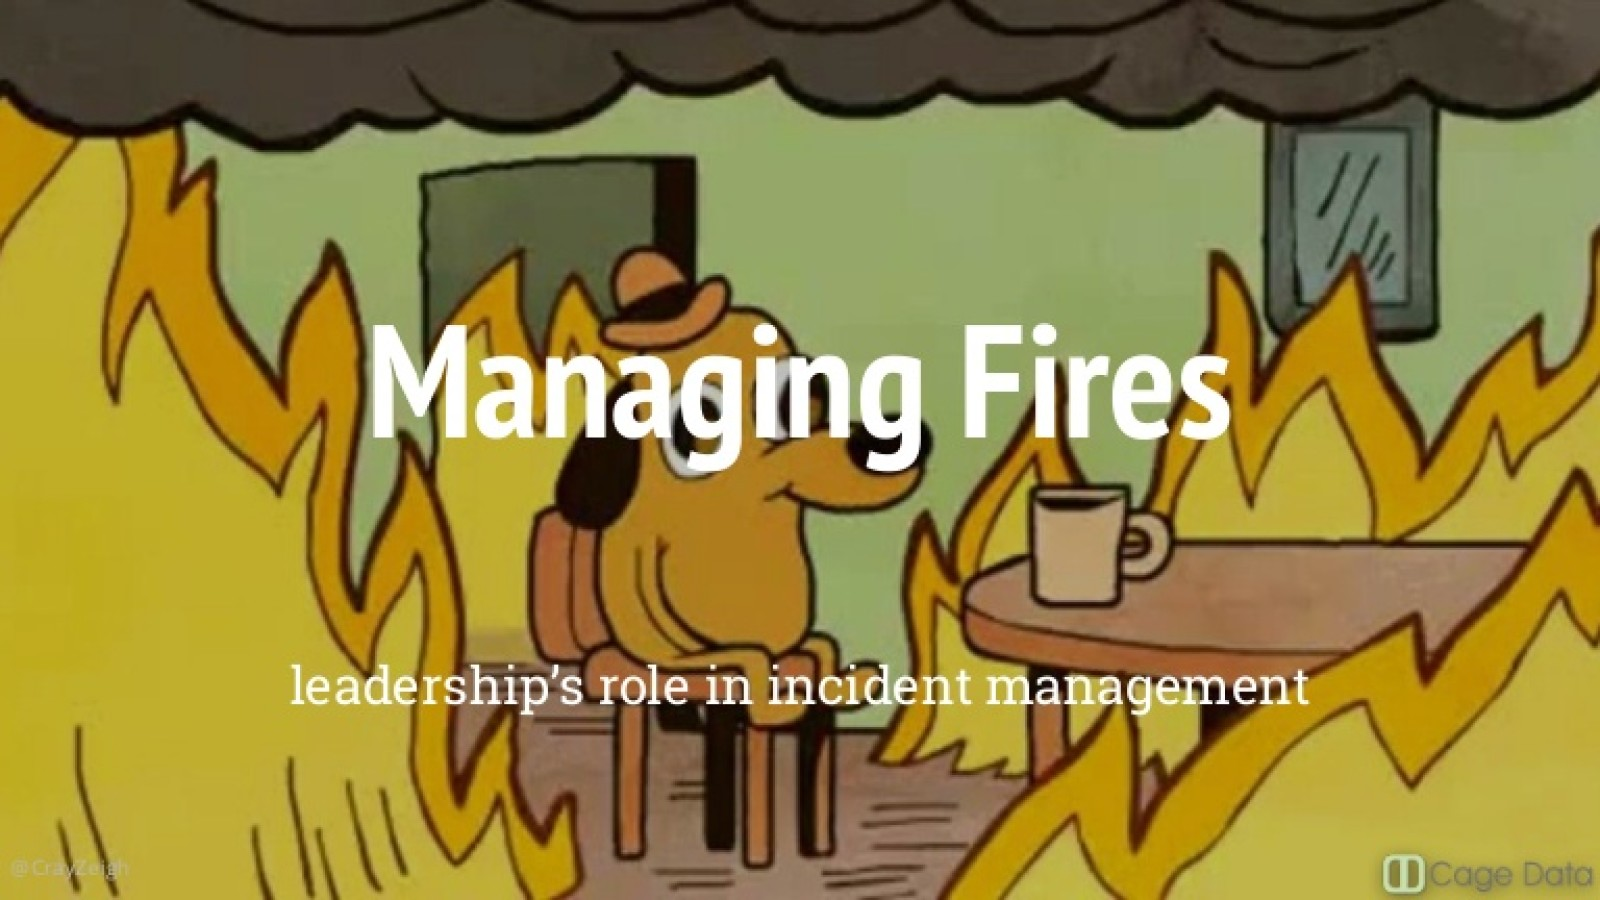 Managing Fires: Leadership through Crisis